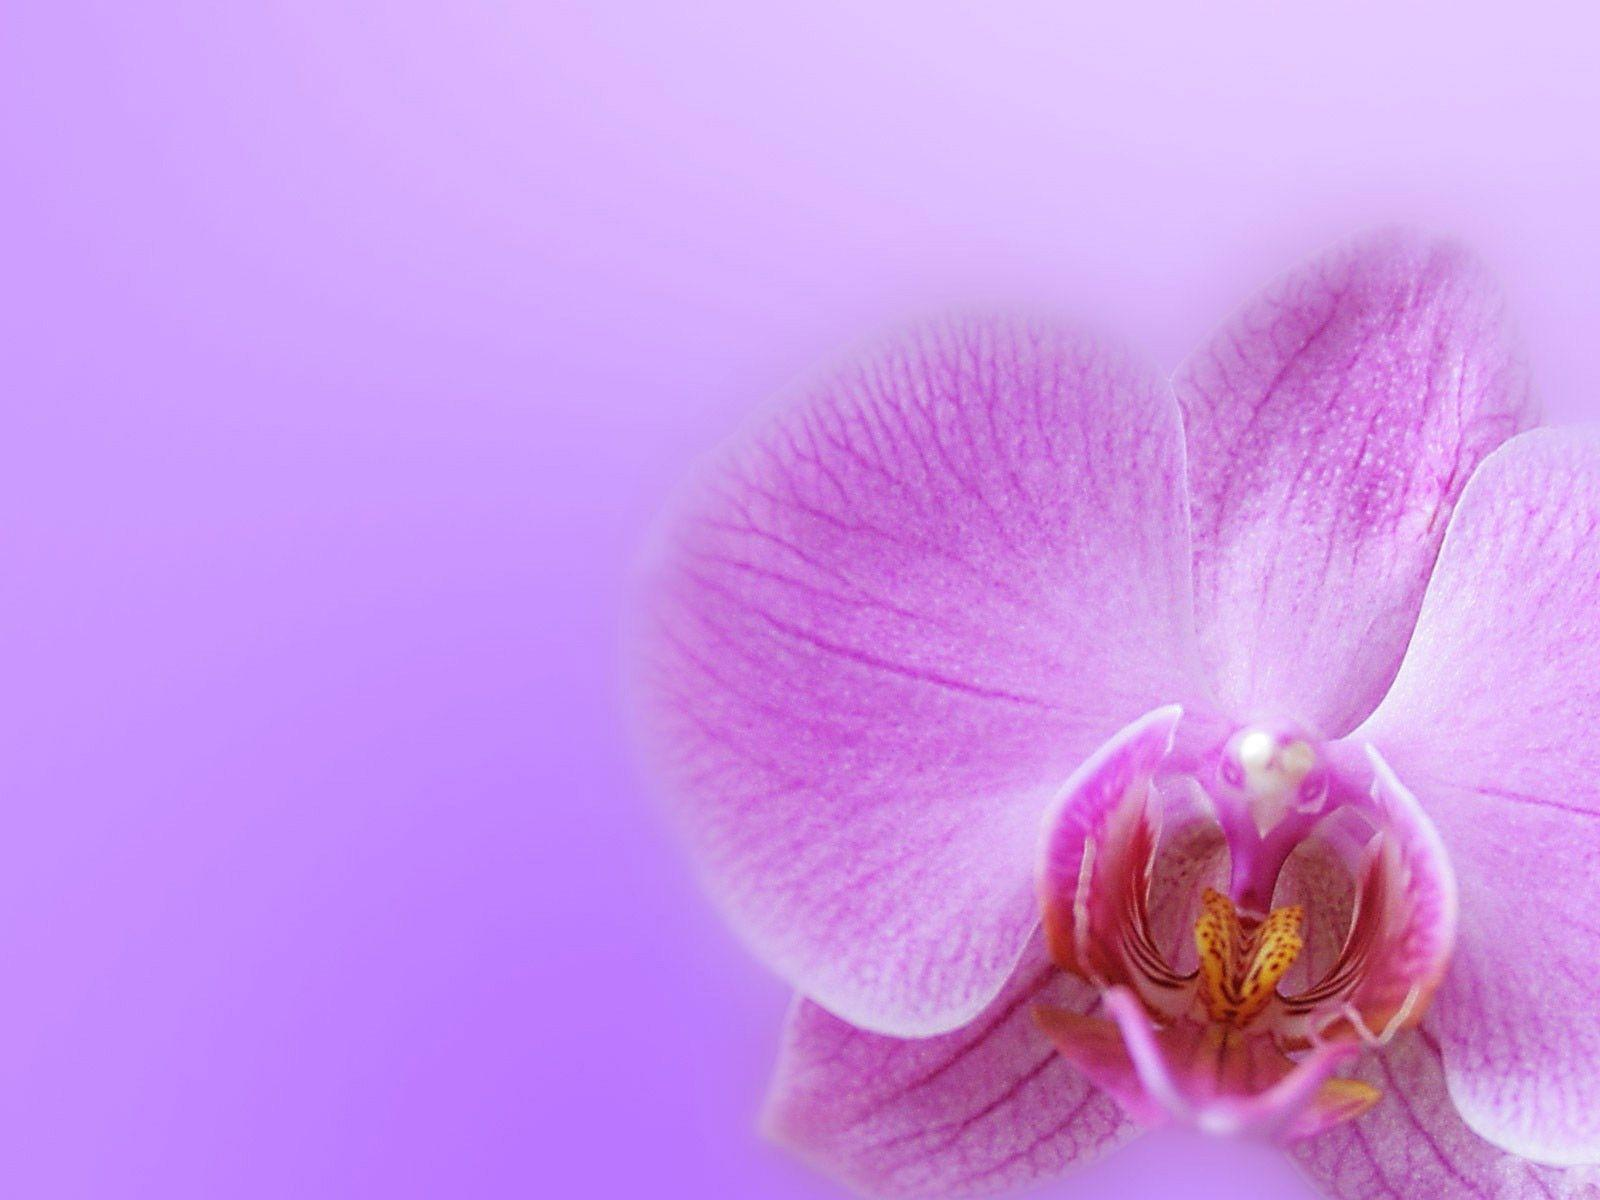 Free wallpapers for your computer - Desktop Wallpaper Gallery Windows 7 Orchid Backgrounds For